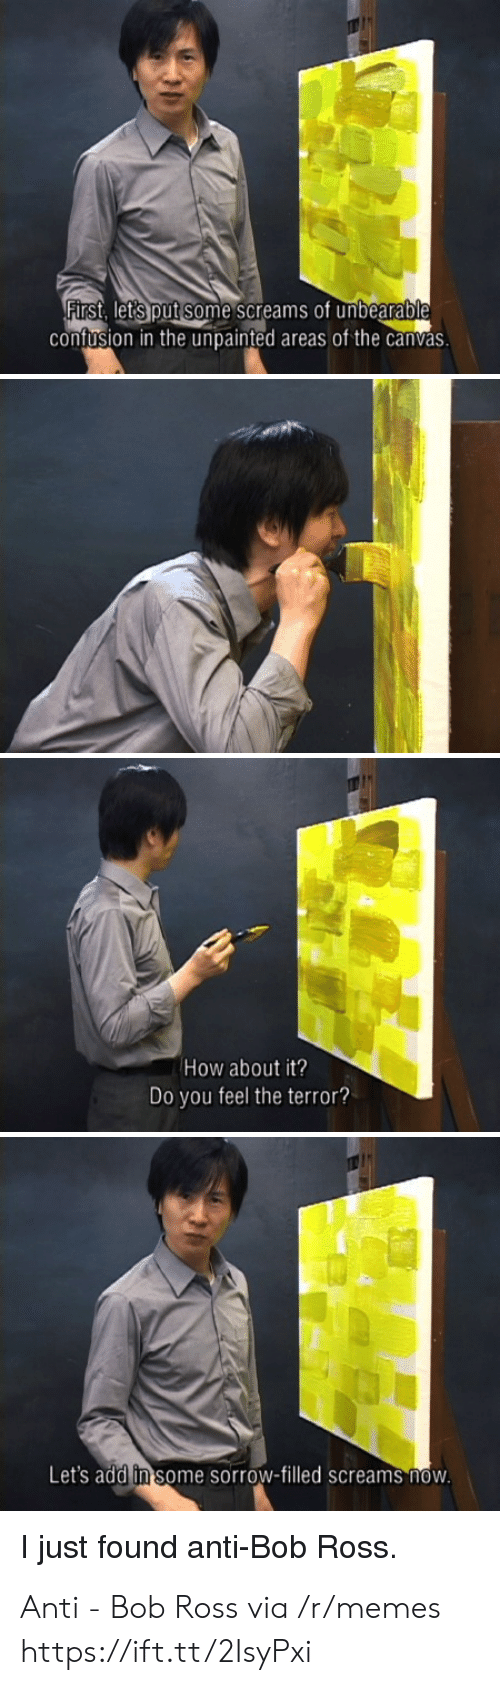 Canvas: First, lets put some screams of unbearable  contusion in the unpainted areas of the canvas  How about it?  Do you feel the terror  Let's add in some sorrow-filled screams novw  just found anti-Bob Ross Anti - Bob Ross via /r/memes https://ift.tt/2IsyPxi